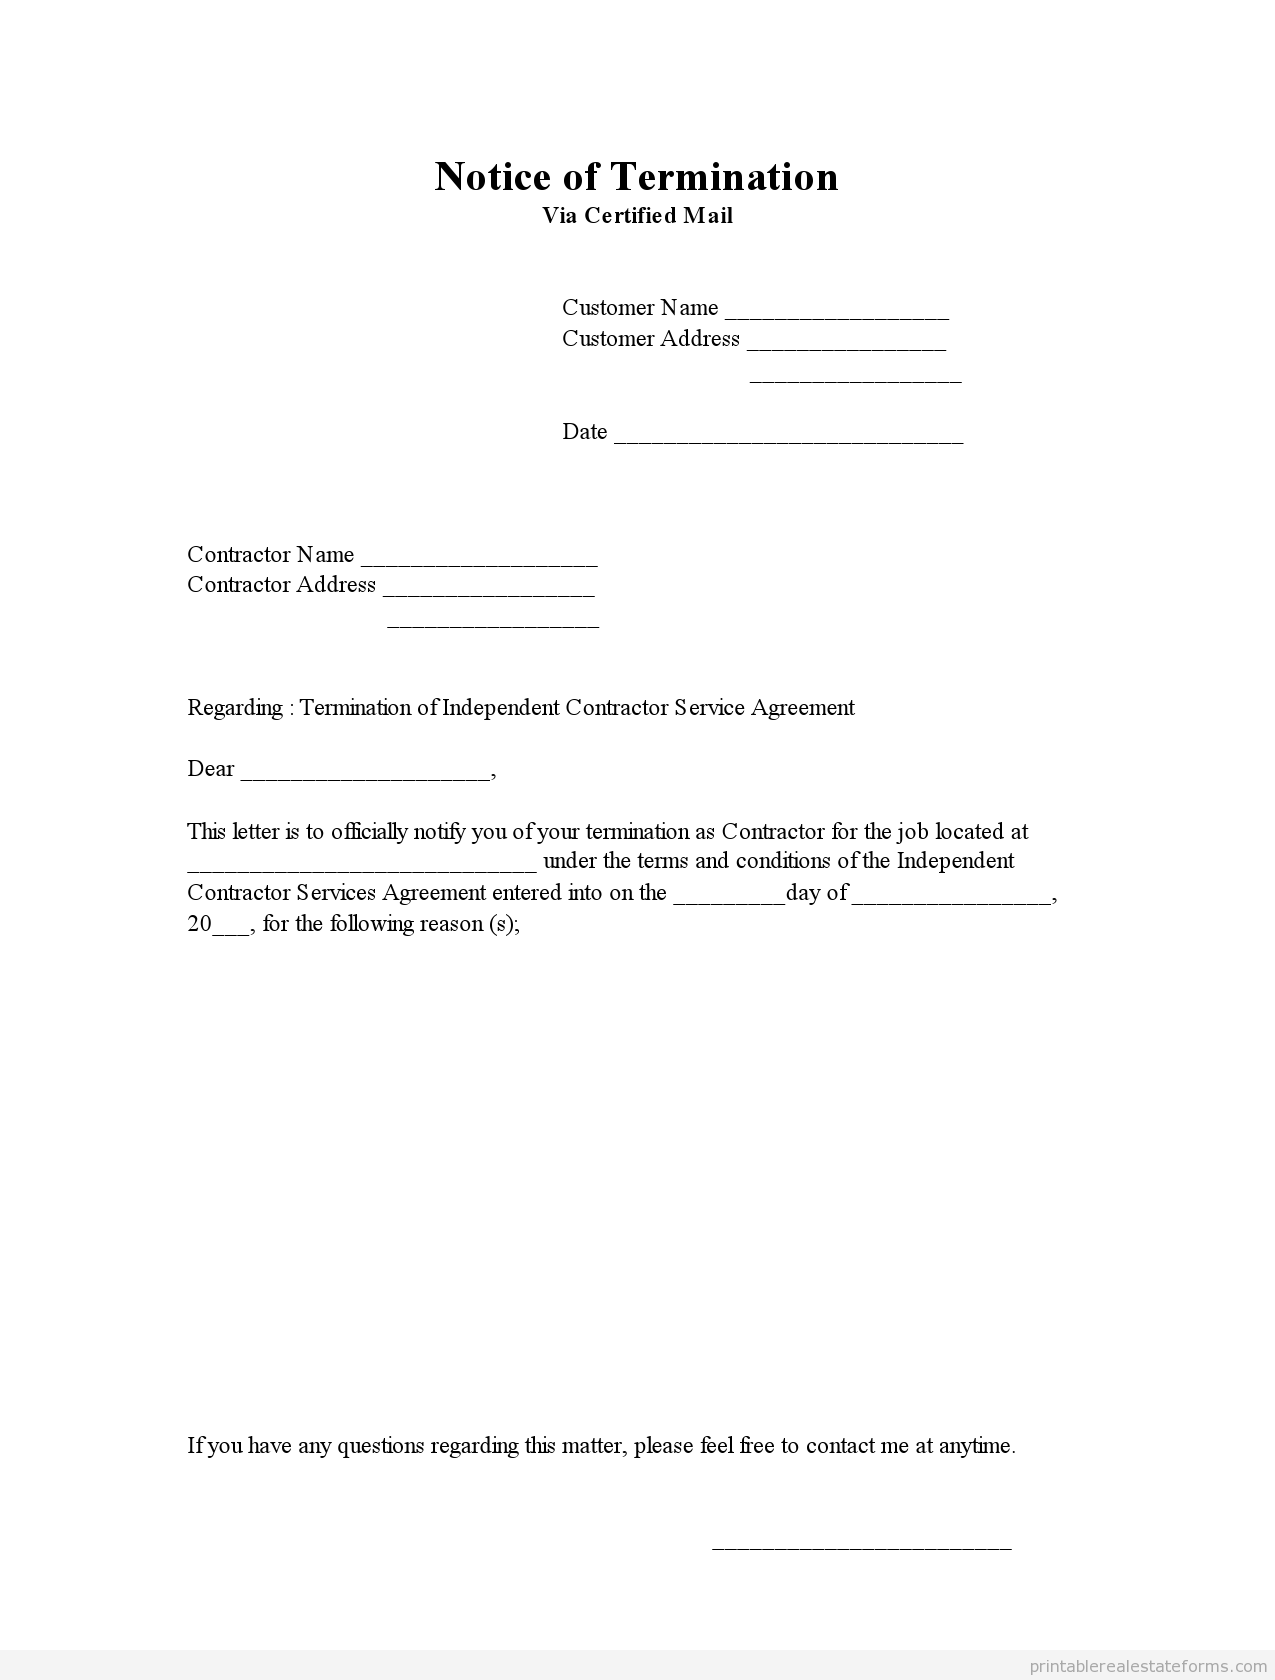 Generic Termination Letter Printable Notice Of Termination Template 2015 Sle Office Real